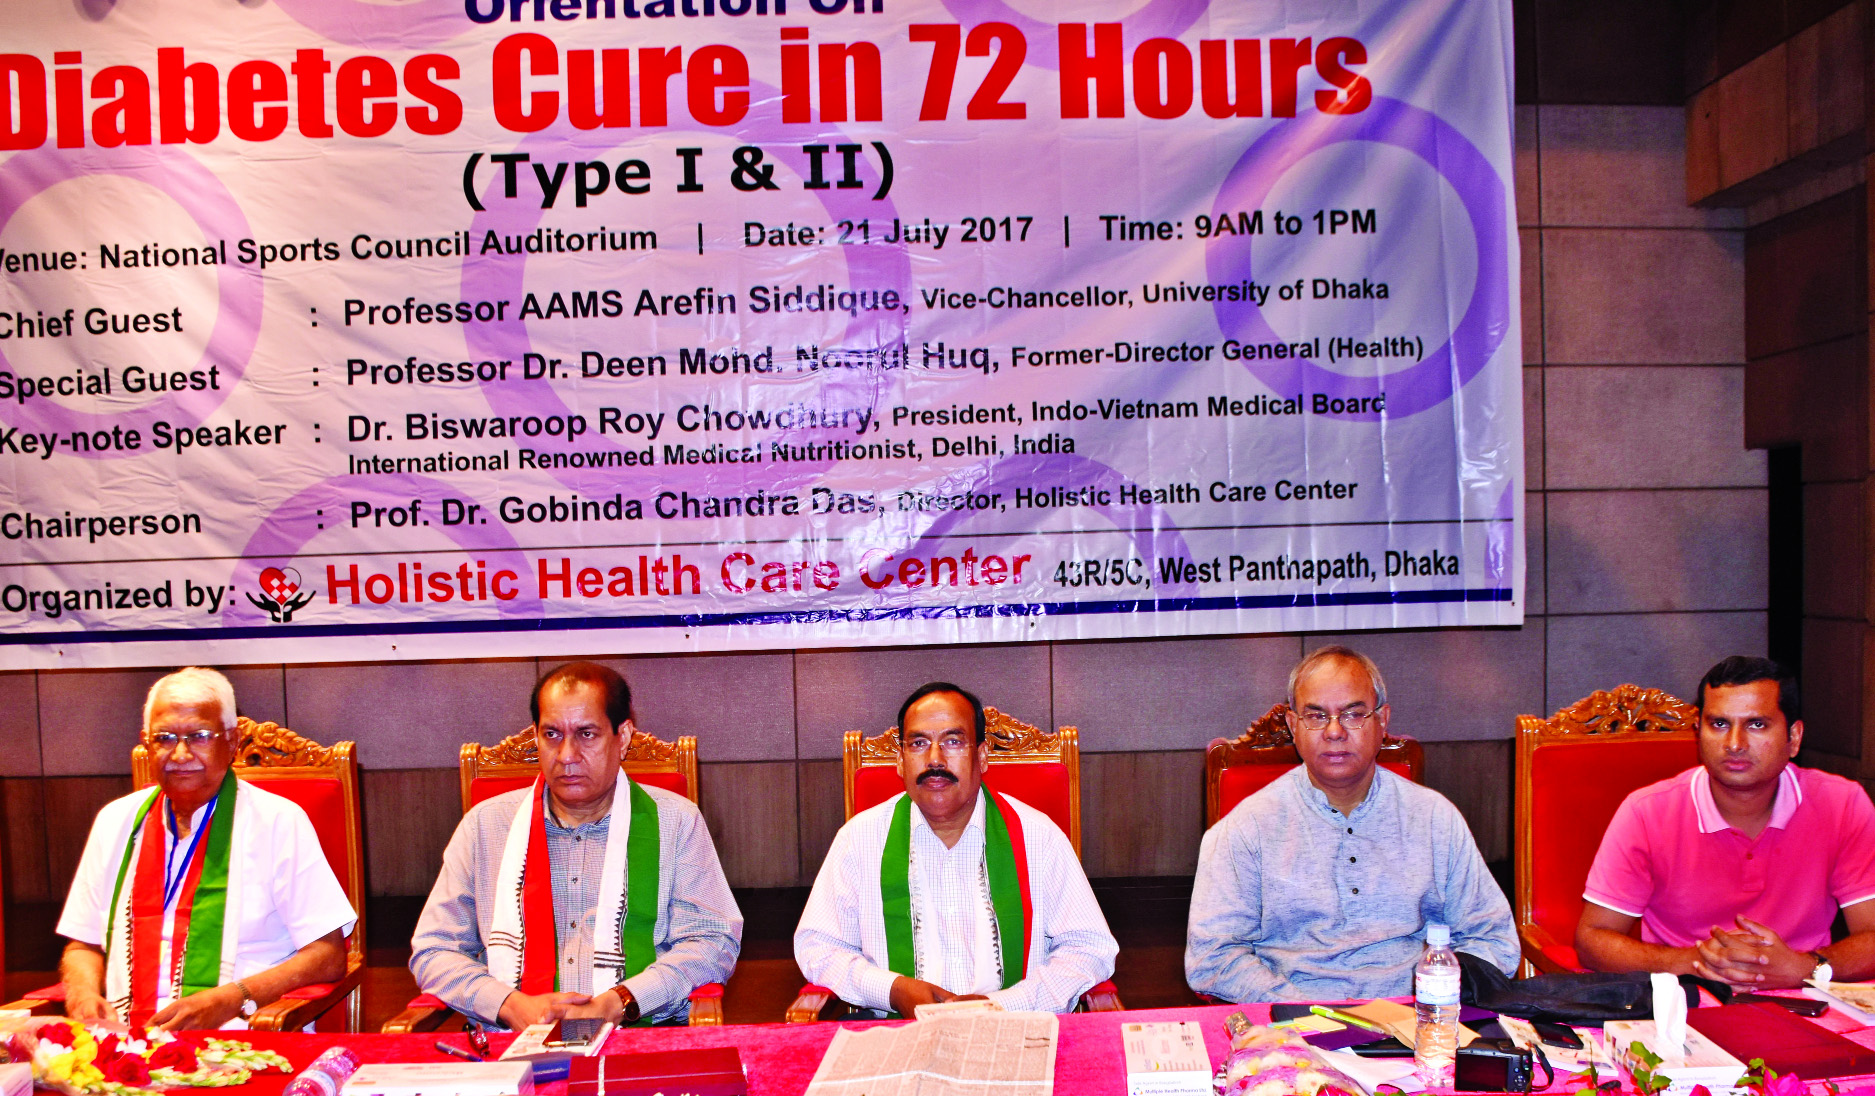 Director of Holistic Health Care Center Prof Dr Gobinda Chandra Das and former DG of the Directorate General of Health Services Prof Dr Deen Mohammad Nurul Haque, among others, at the orientation on 'Diabetes Cure in 72 Hours' in the auditorium of National Sports Council in the city on Friday.